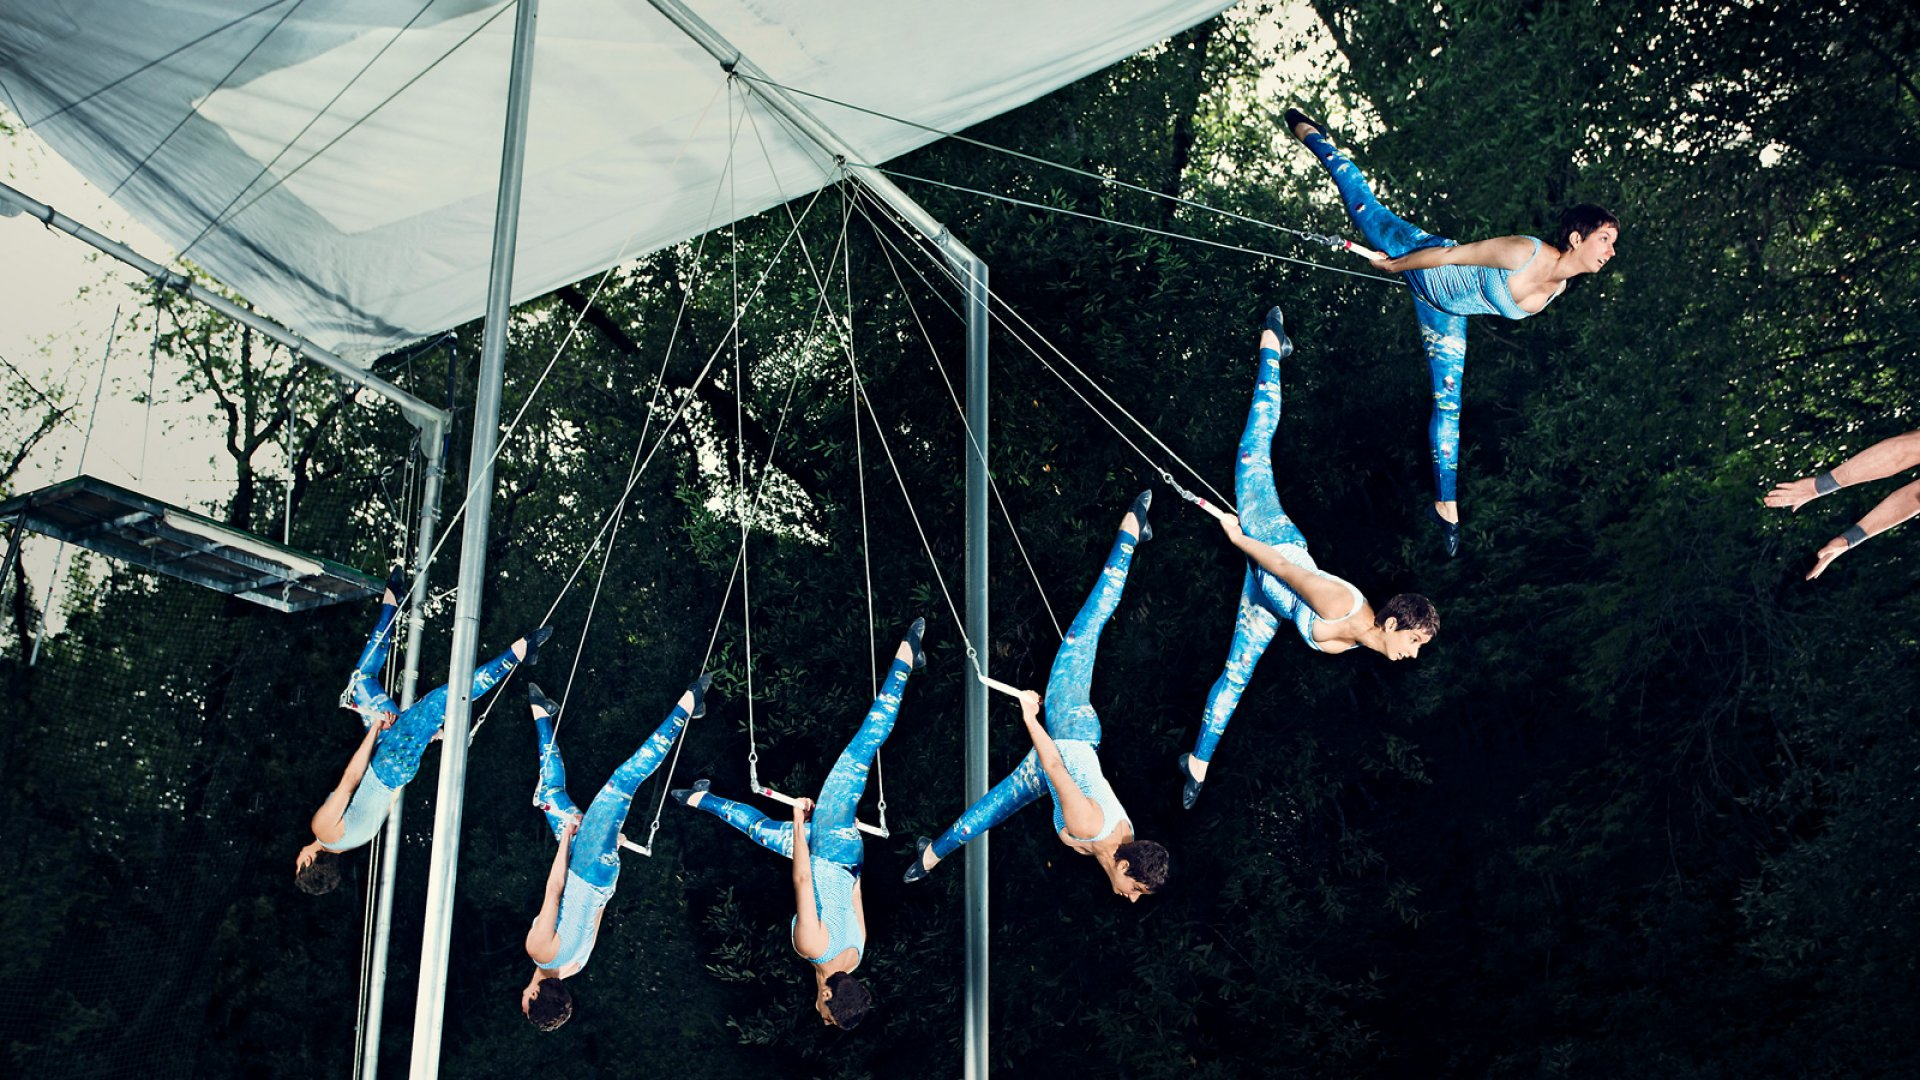 To Calm Her Nerves, This Founder Takes to the Trapeze